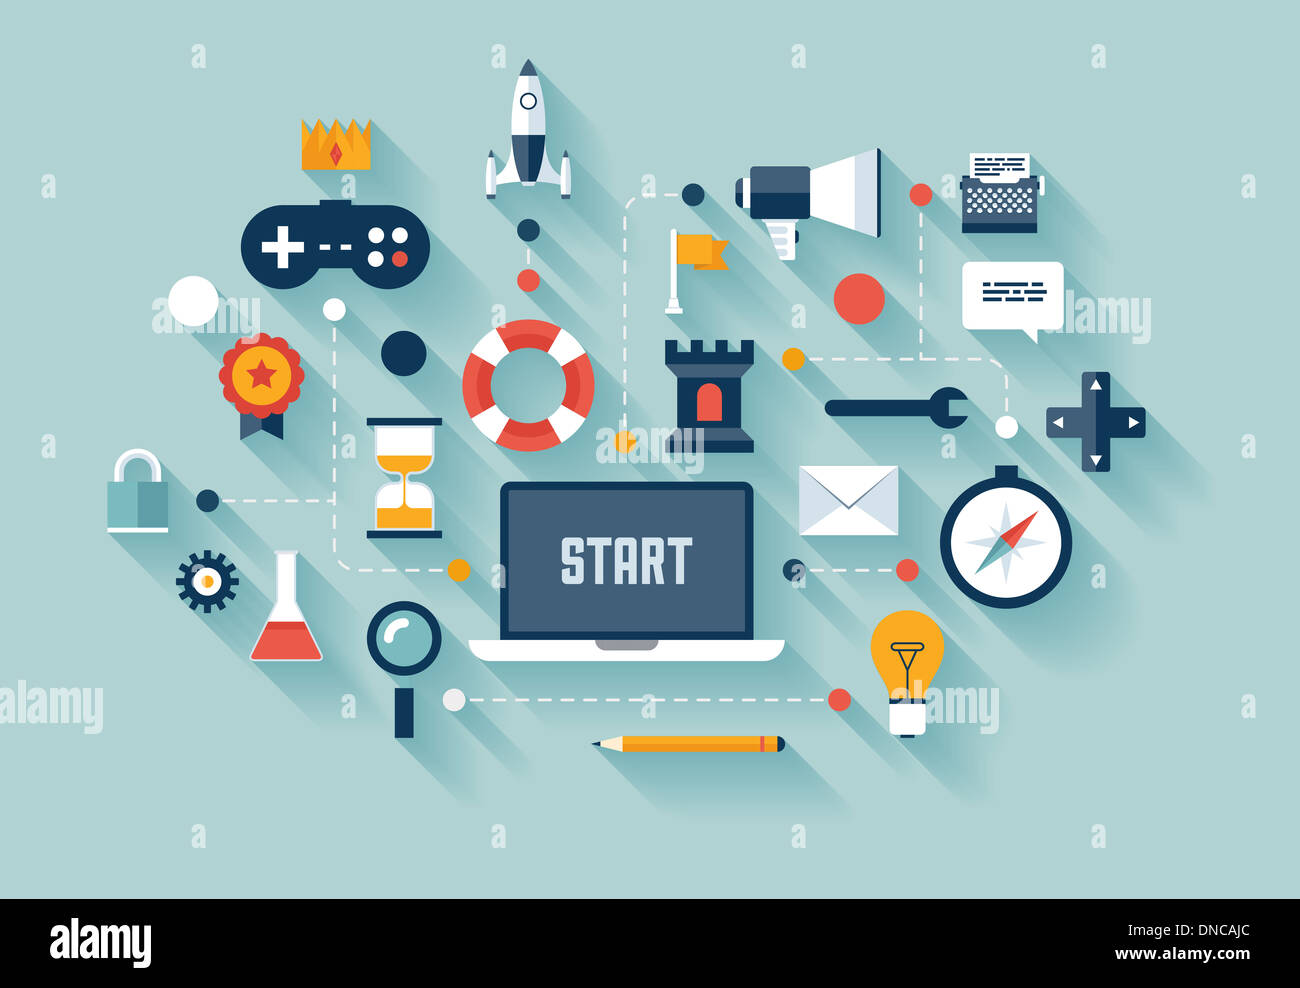 Flat design illustration concept of gamification strategy in business, new trend in social media marketing and life Stock Photo